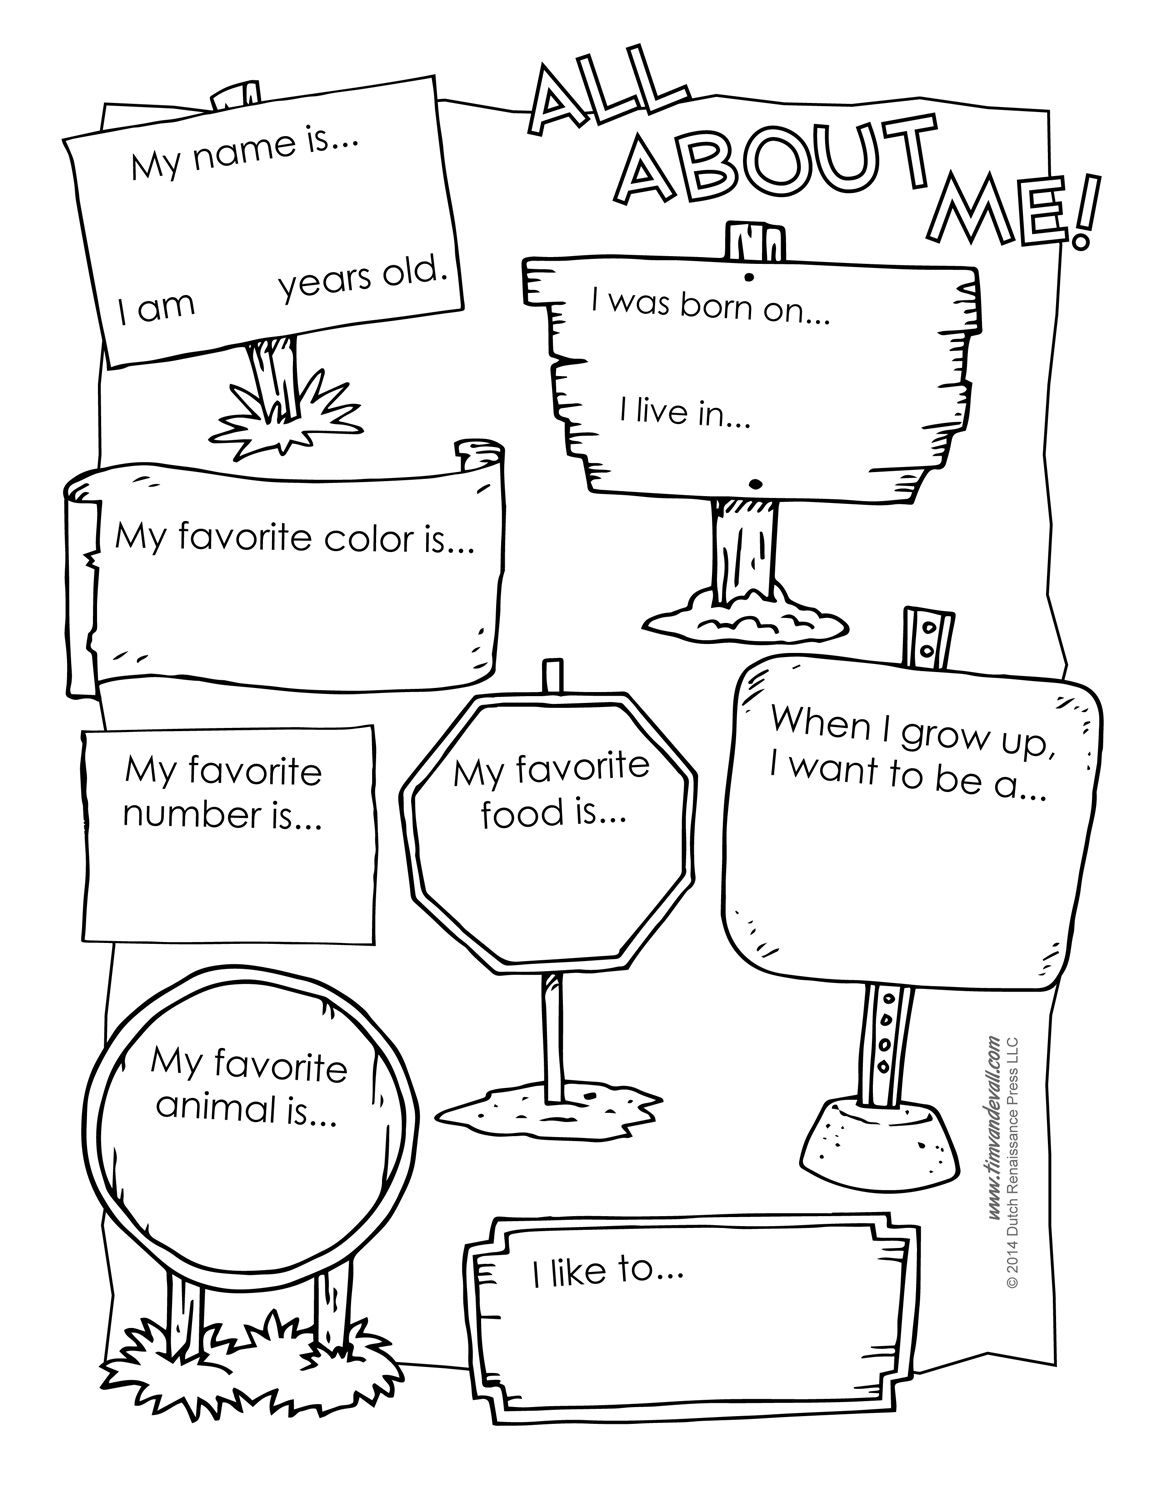 medium resolution of All About Me Worksheet Printable   All about me worksheet